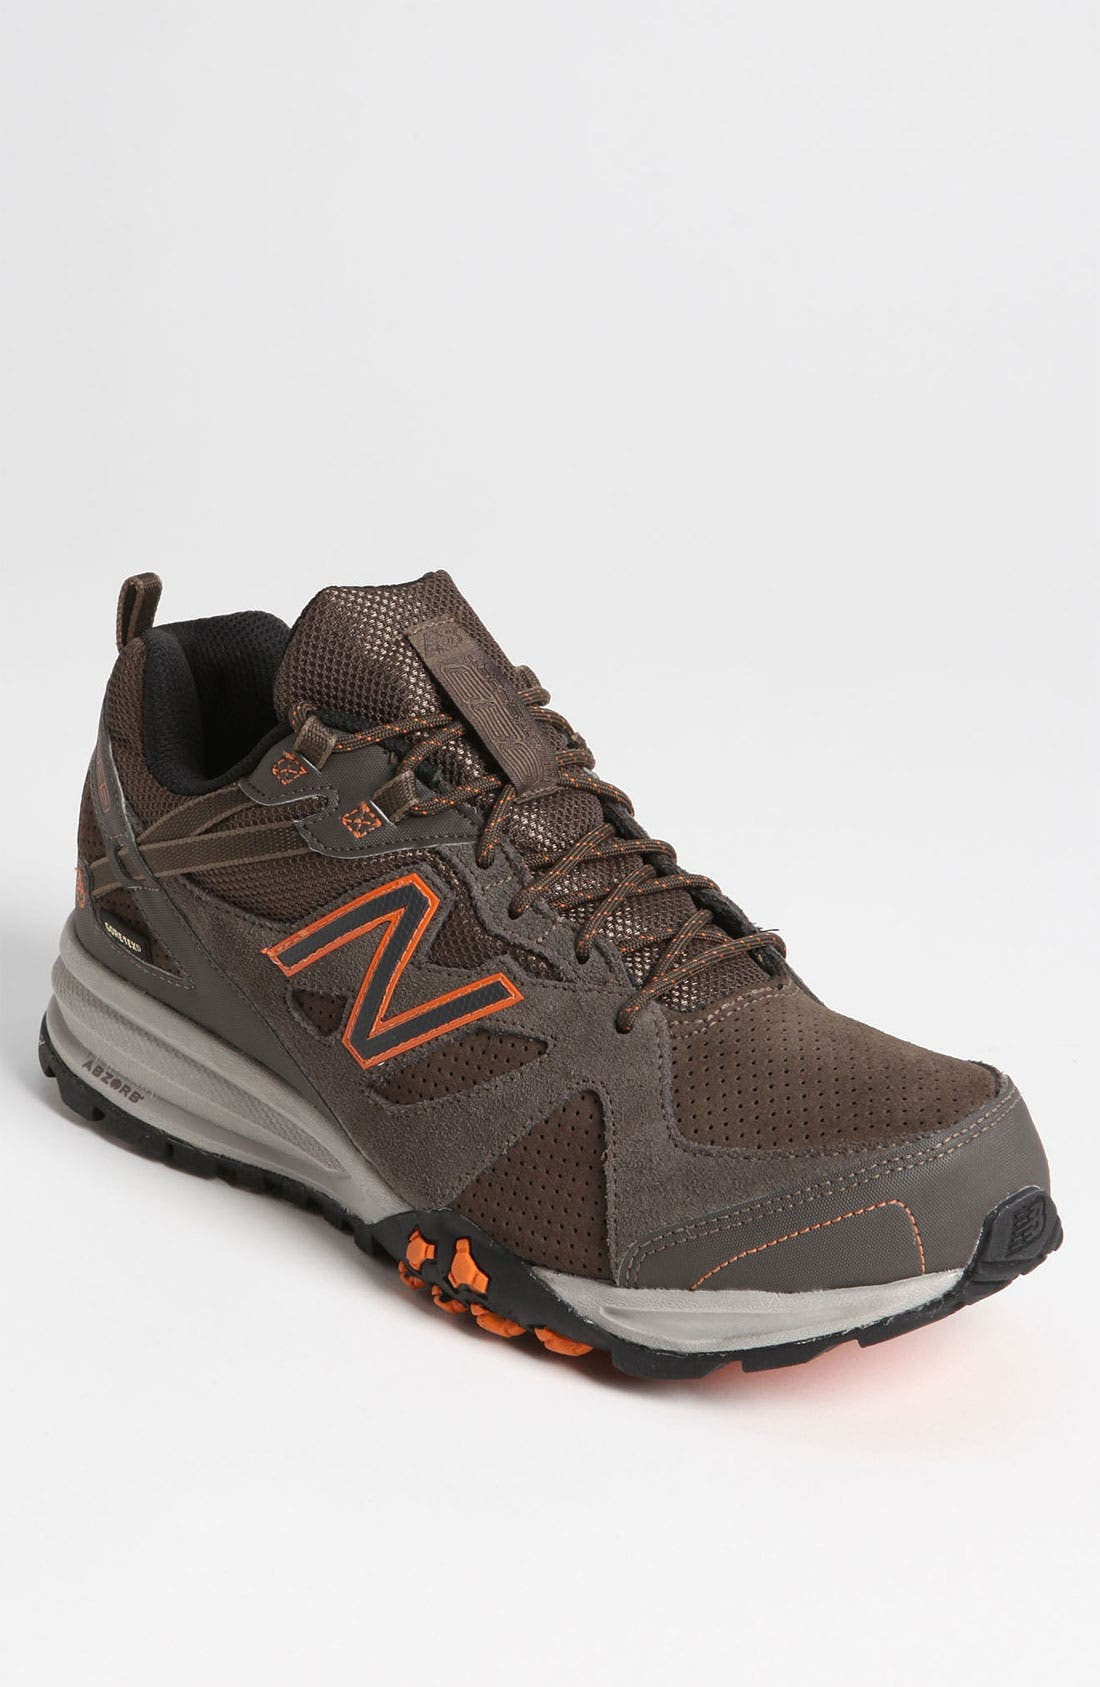 Alternate Image 1 Selected - NEW BALANCE 989 HIKING SHOE